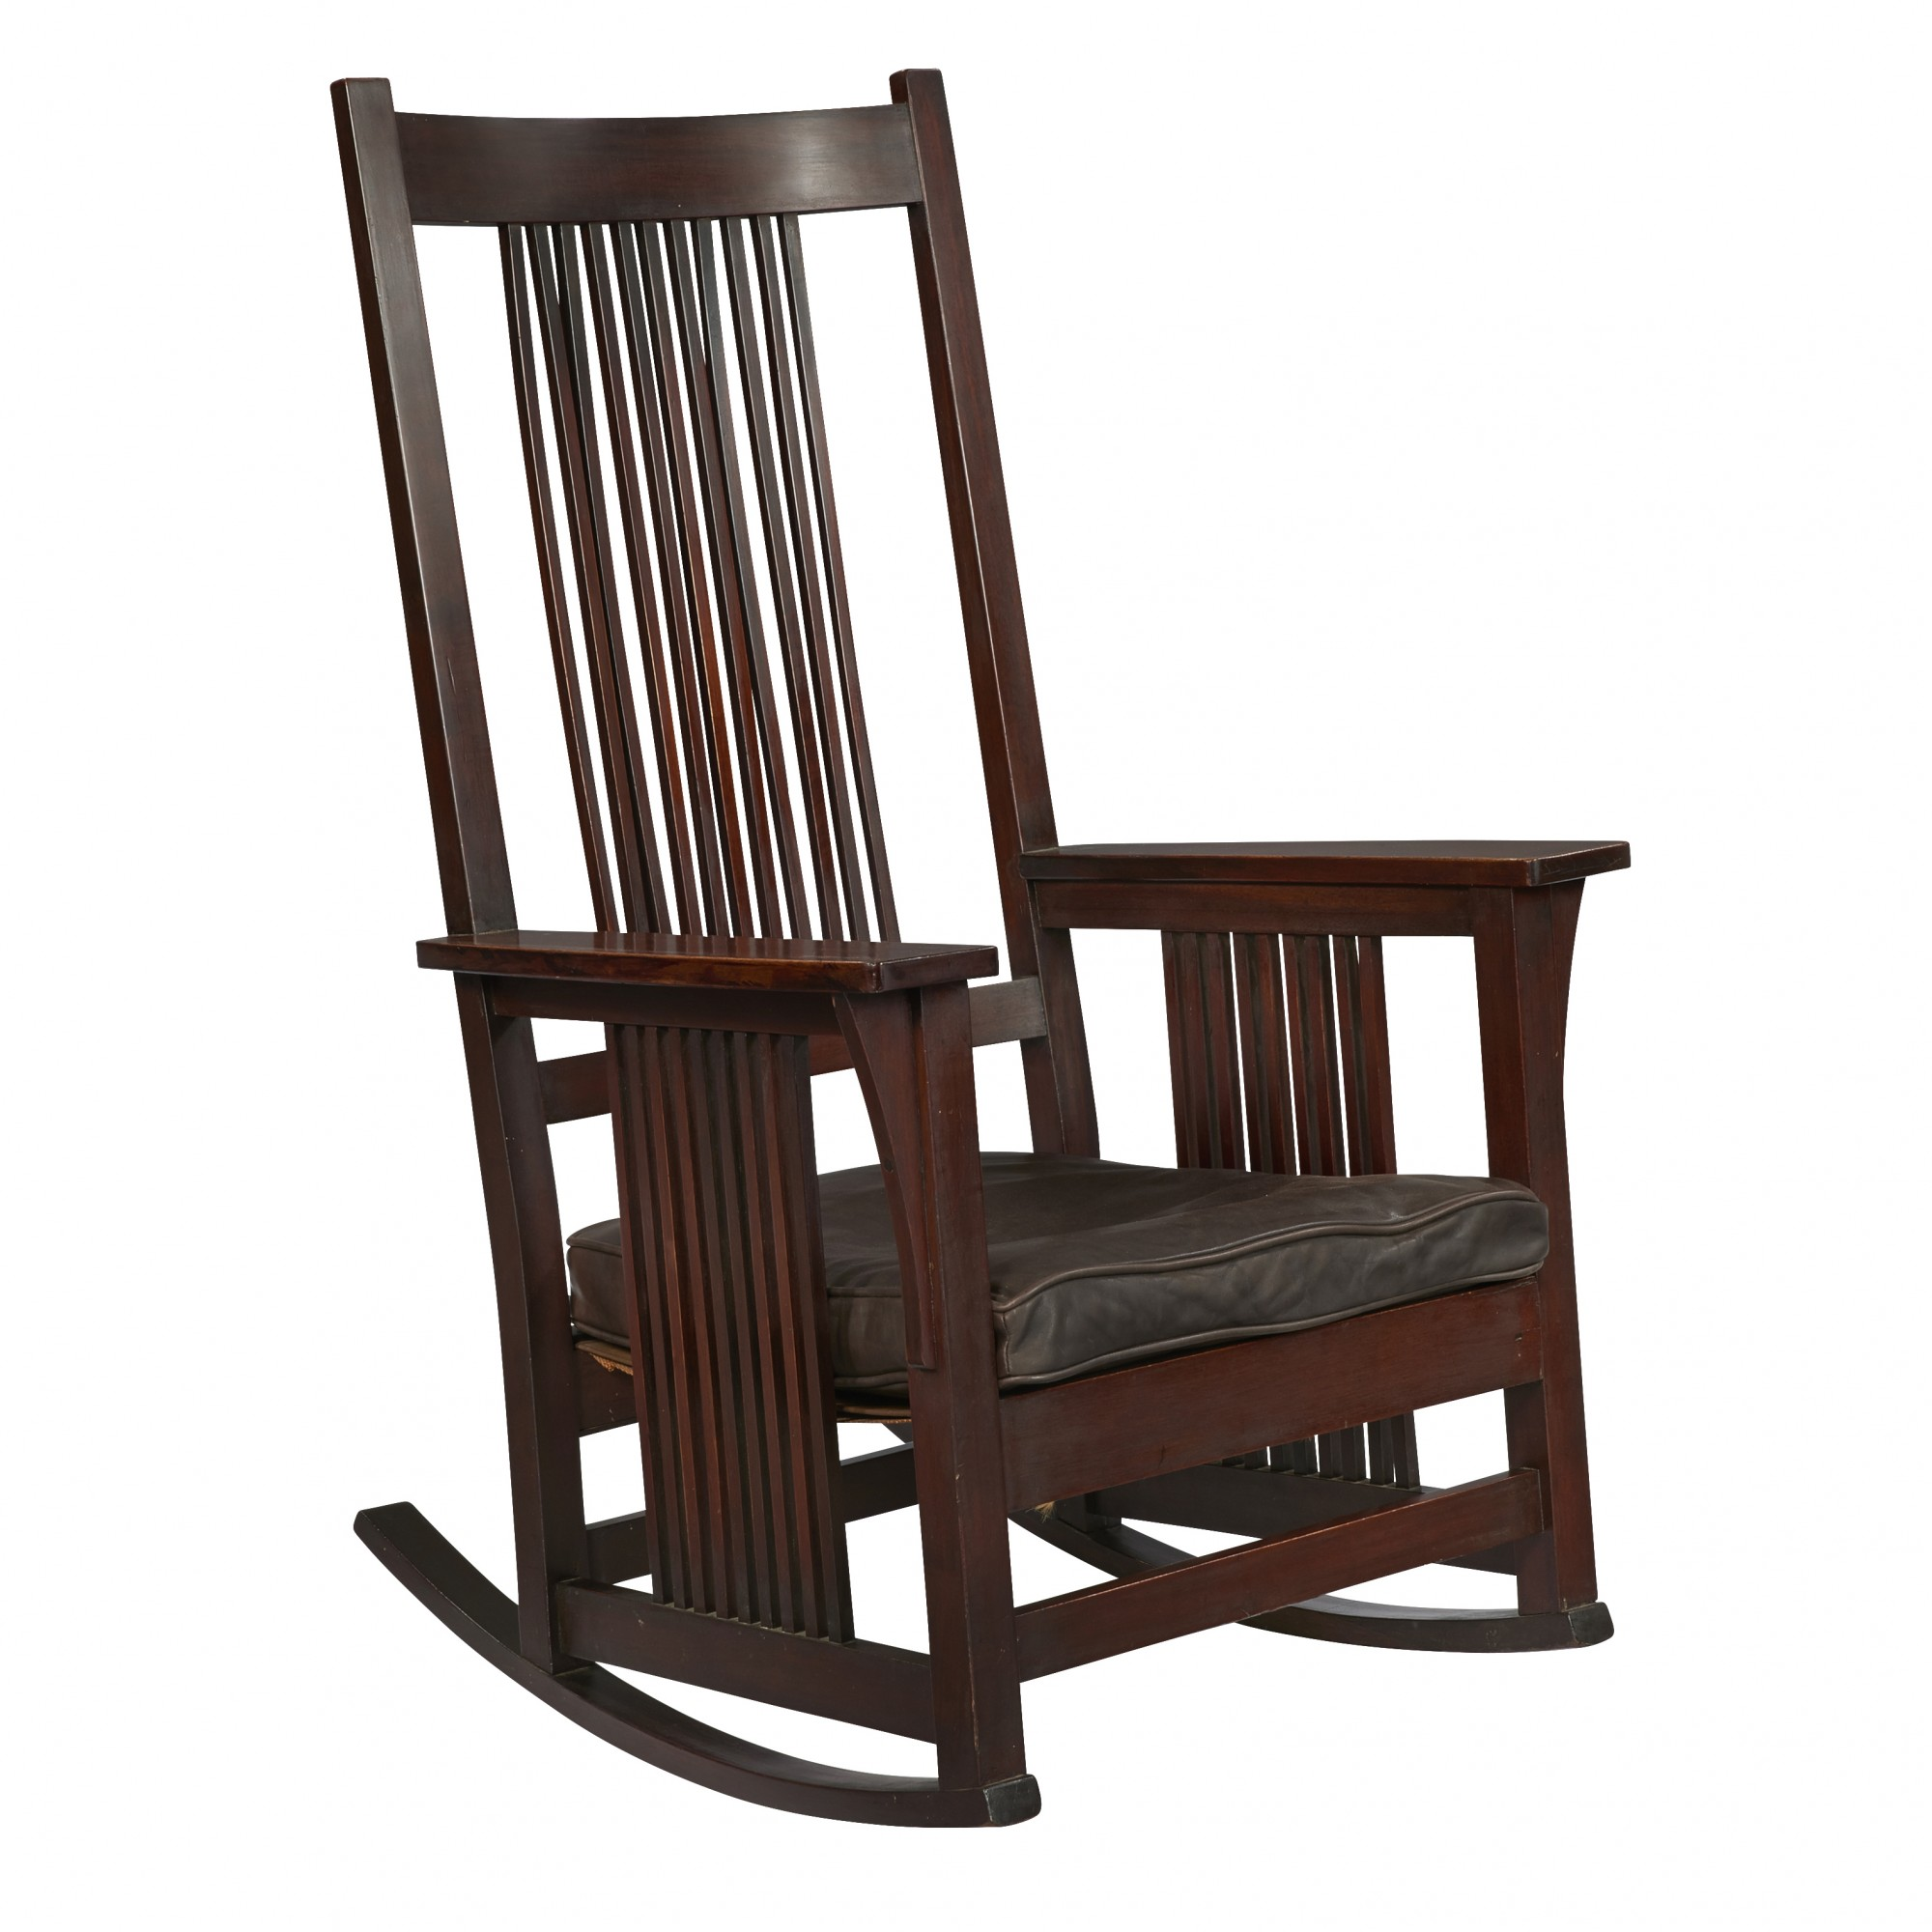 Gustav Stickley Spindle Arm Rocker